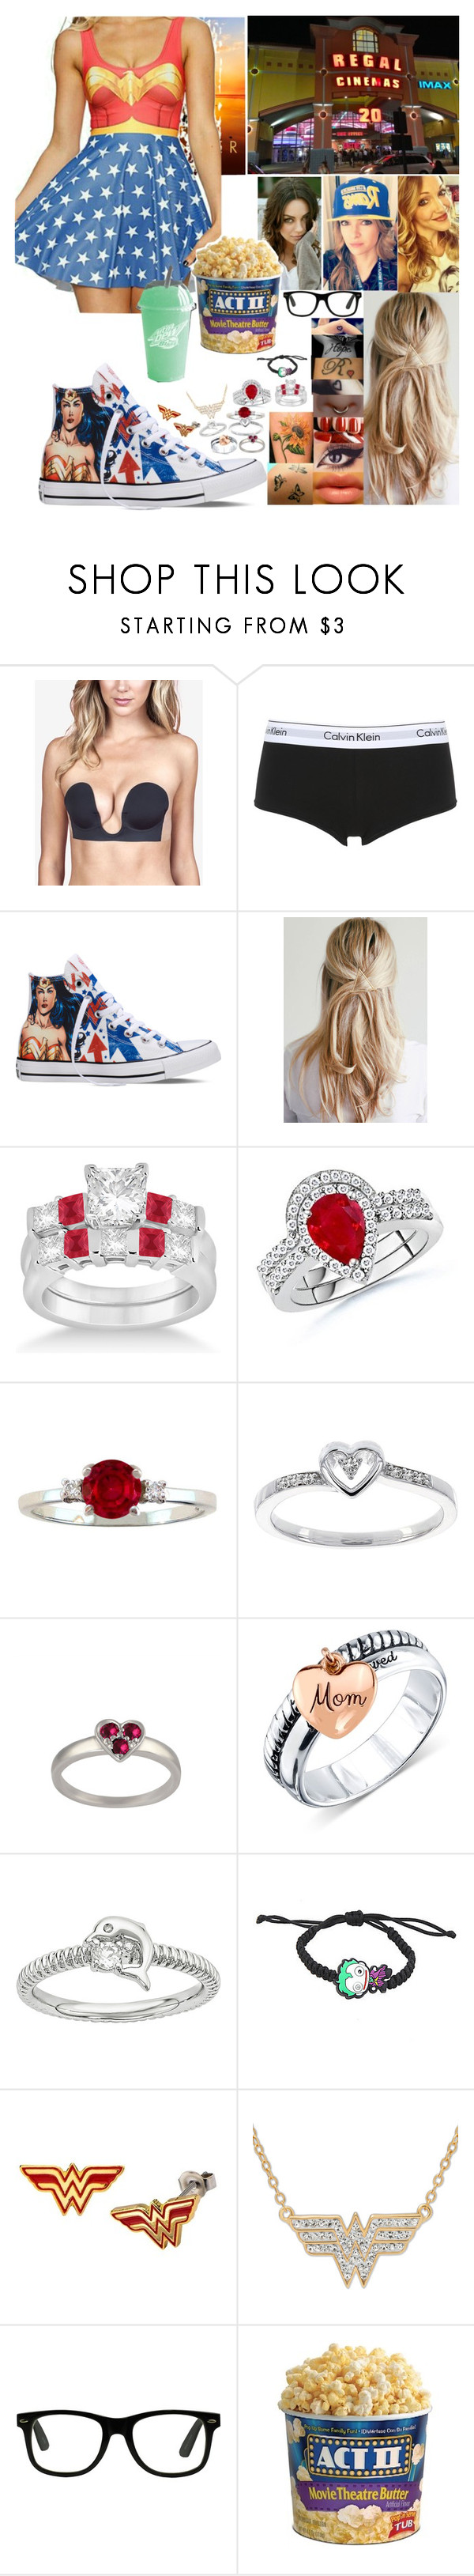 """Wonder Woman"" by spidey31 ❤ liked on Polyvore featuring Fashion Forms, Calvin Klein Underwear, Converse, Allurez, Modern Bride and Unwritten"